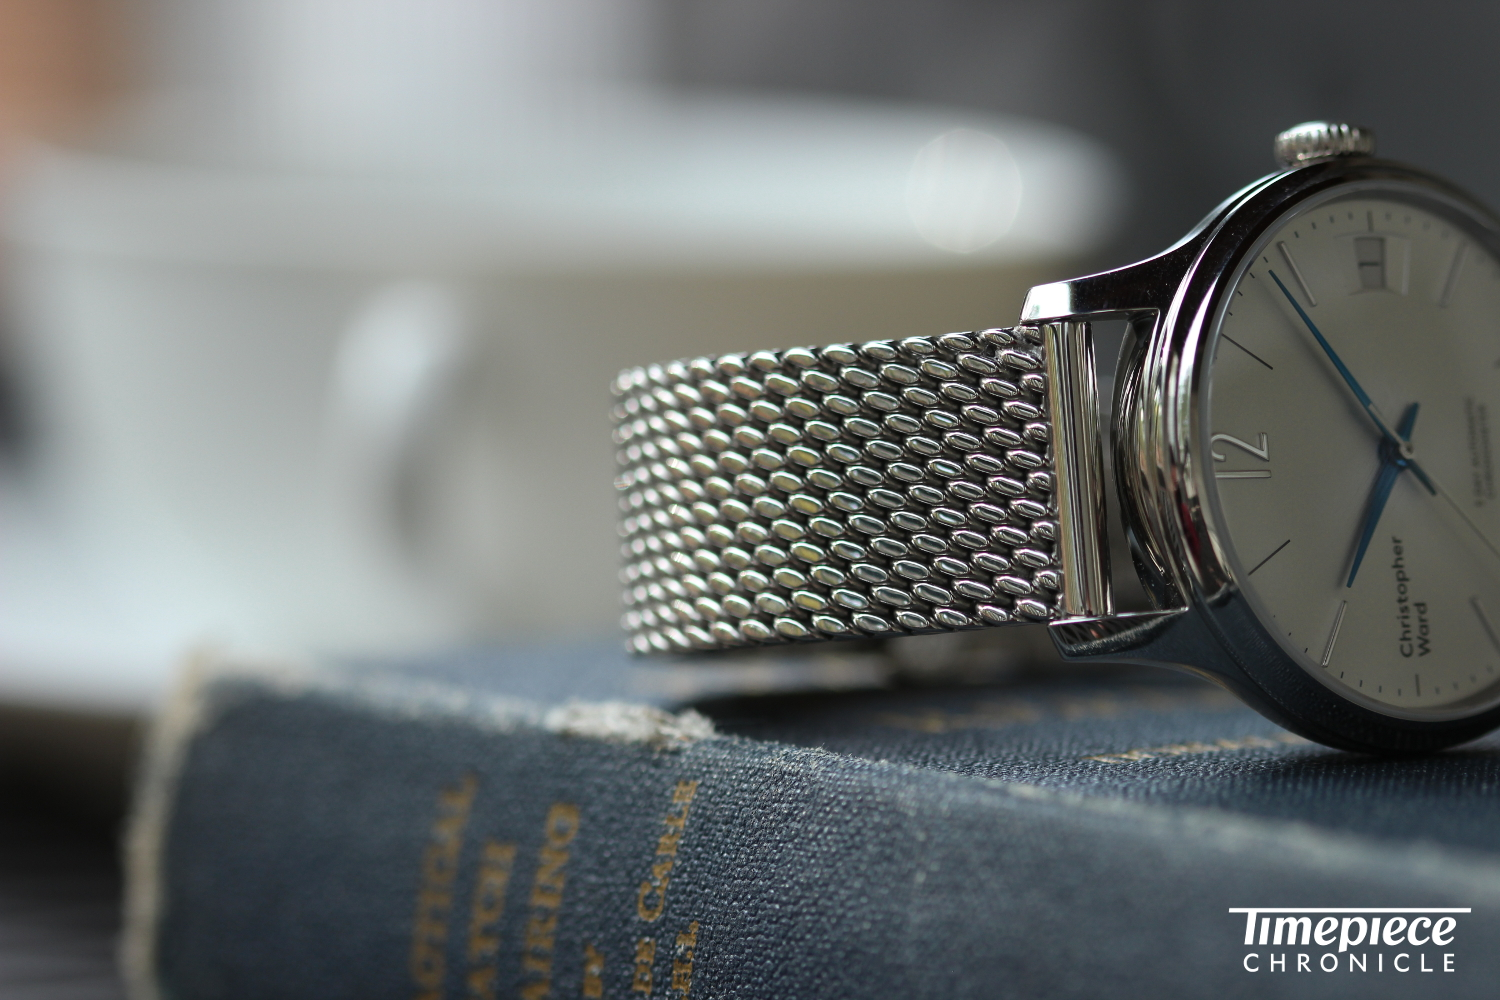 Christopher Ward 5 Day Automatic Dial macro 3.JPG